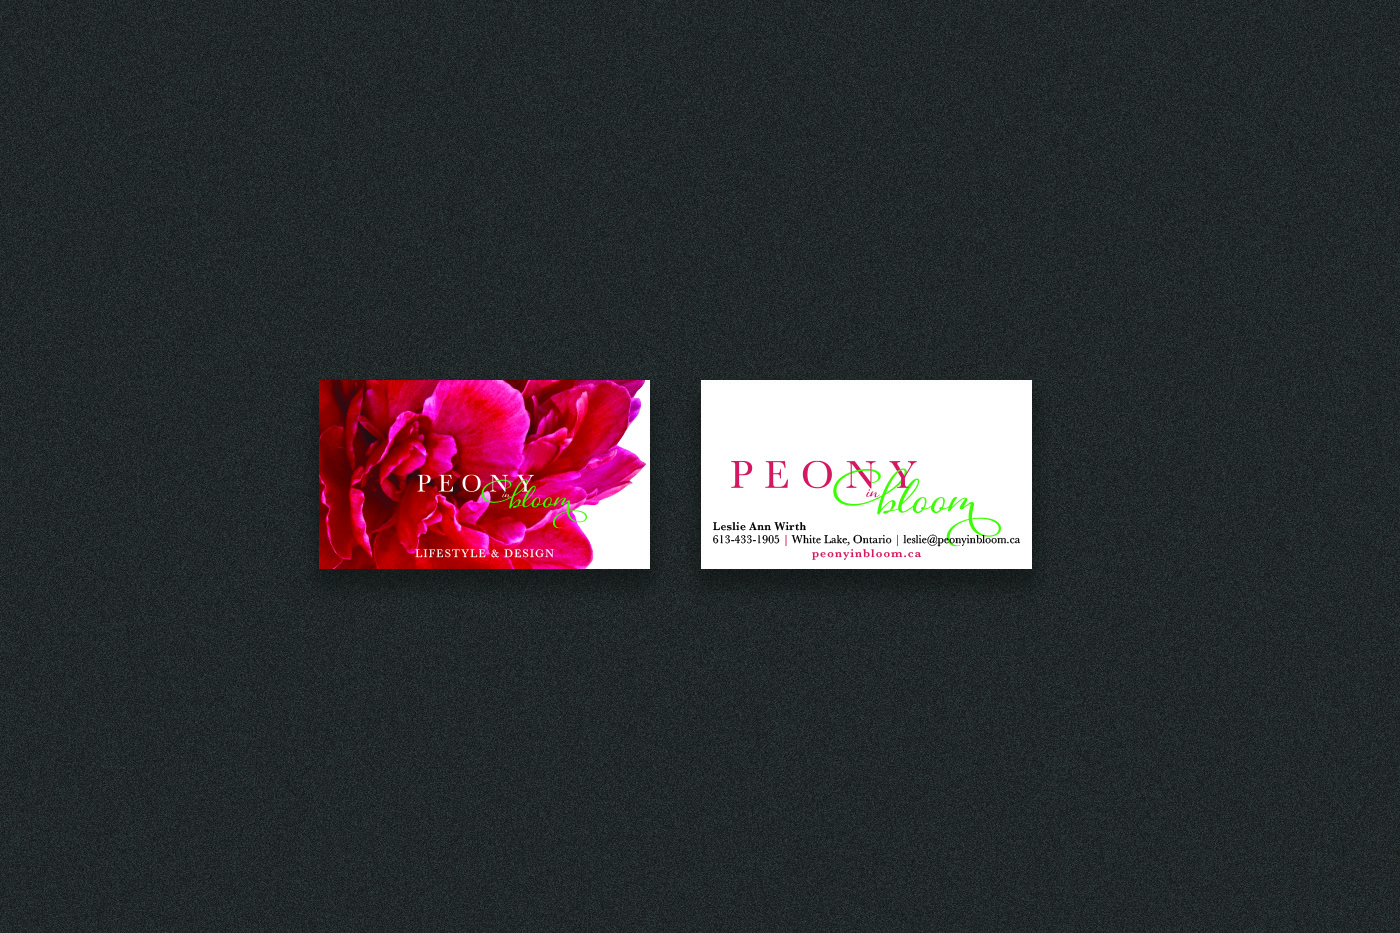 Peony-In-Bloom-logo-brand-business-card-design.jpg